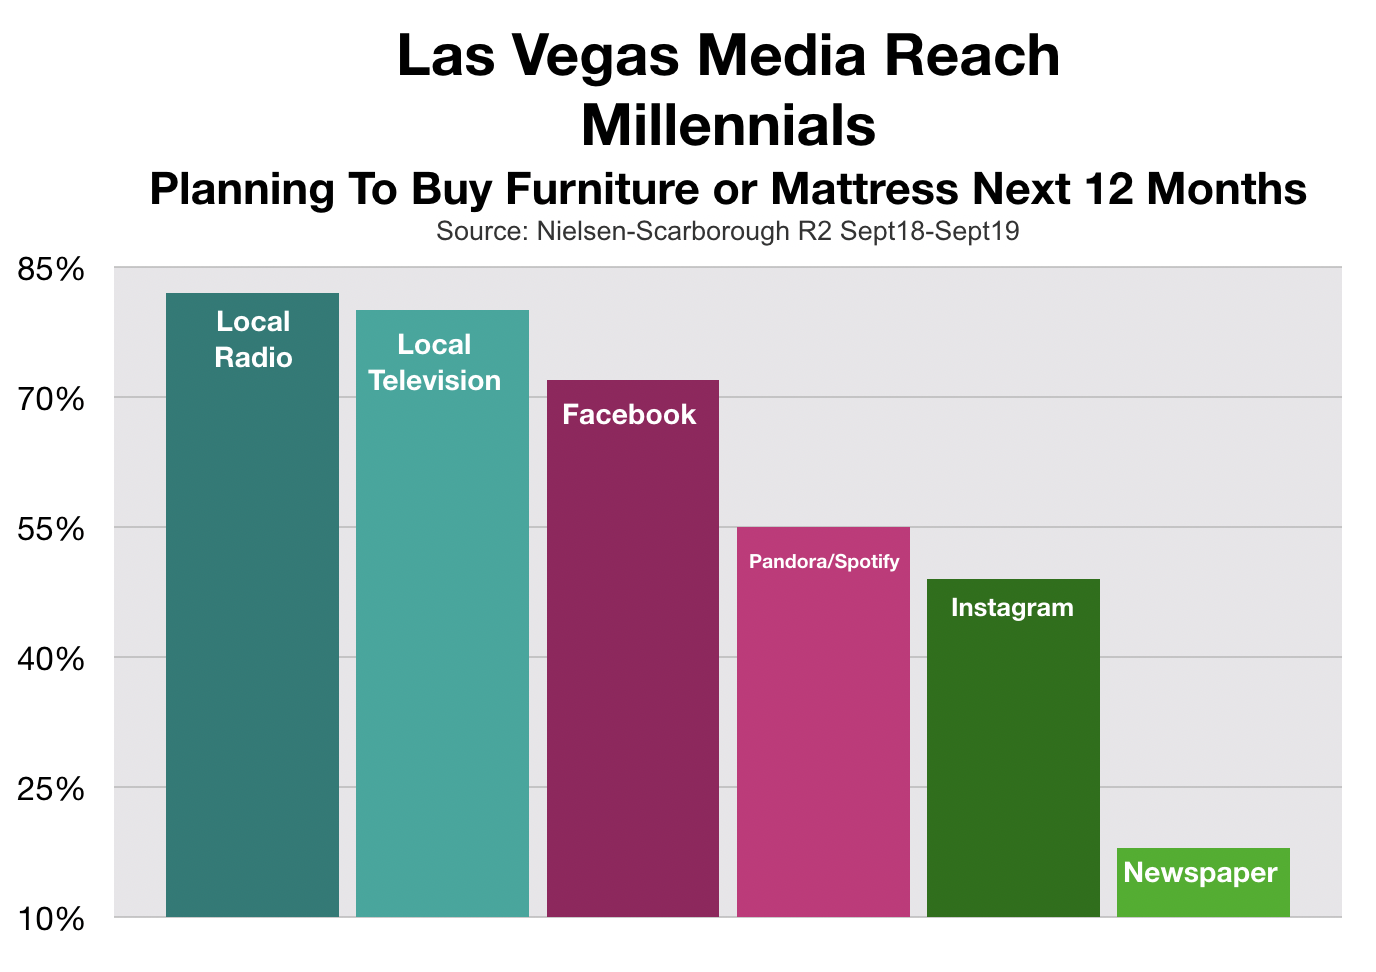 Advertising In Las Vegas Millennial Furniture Shoppers